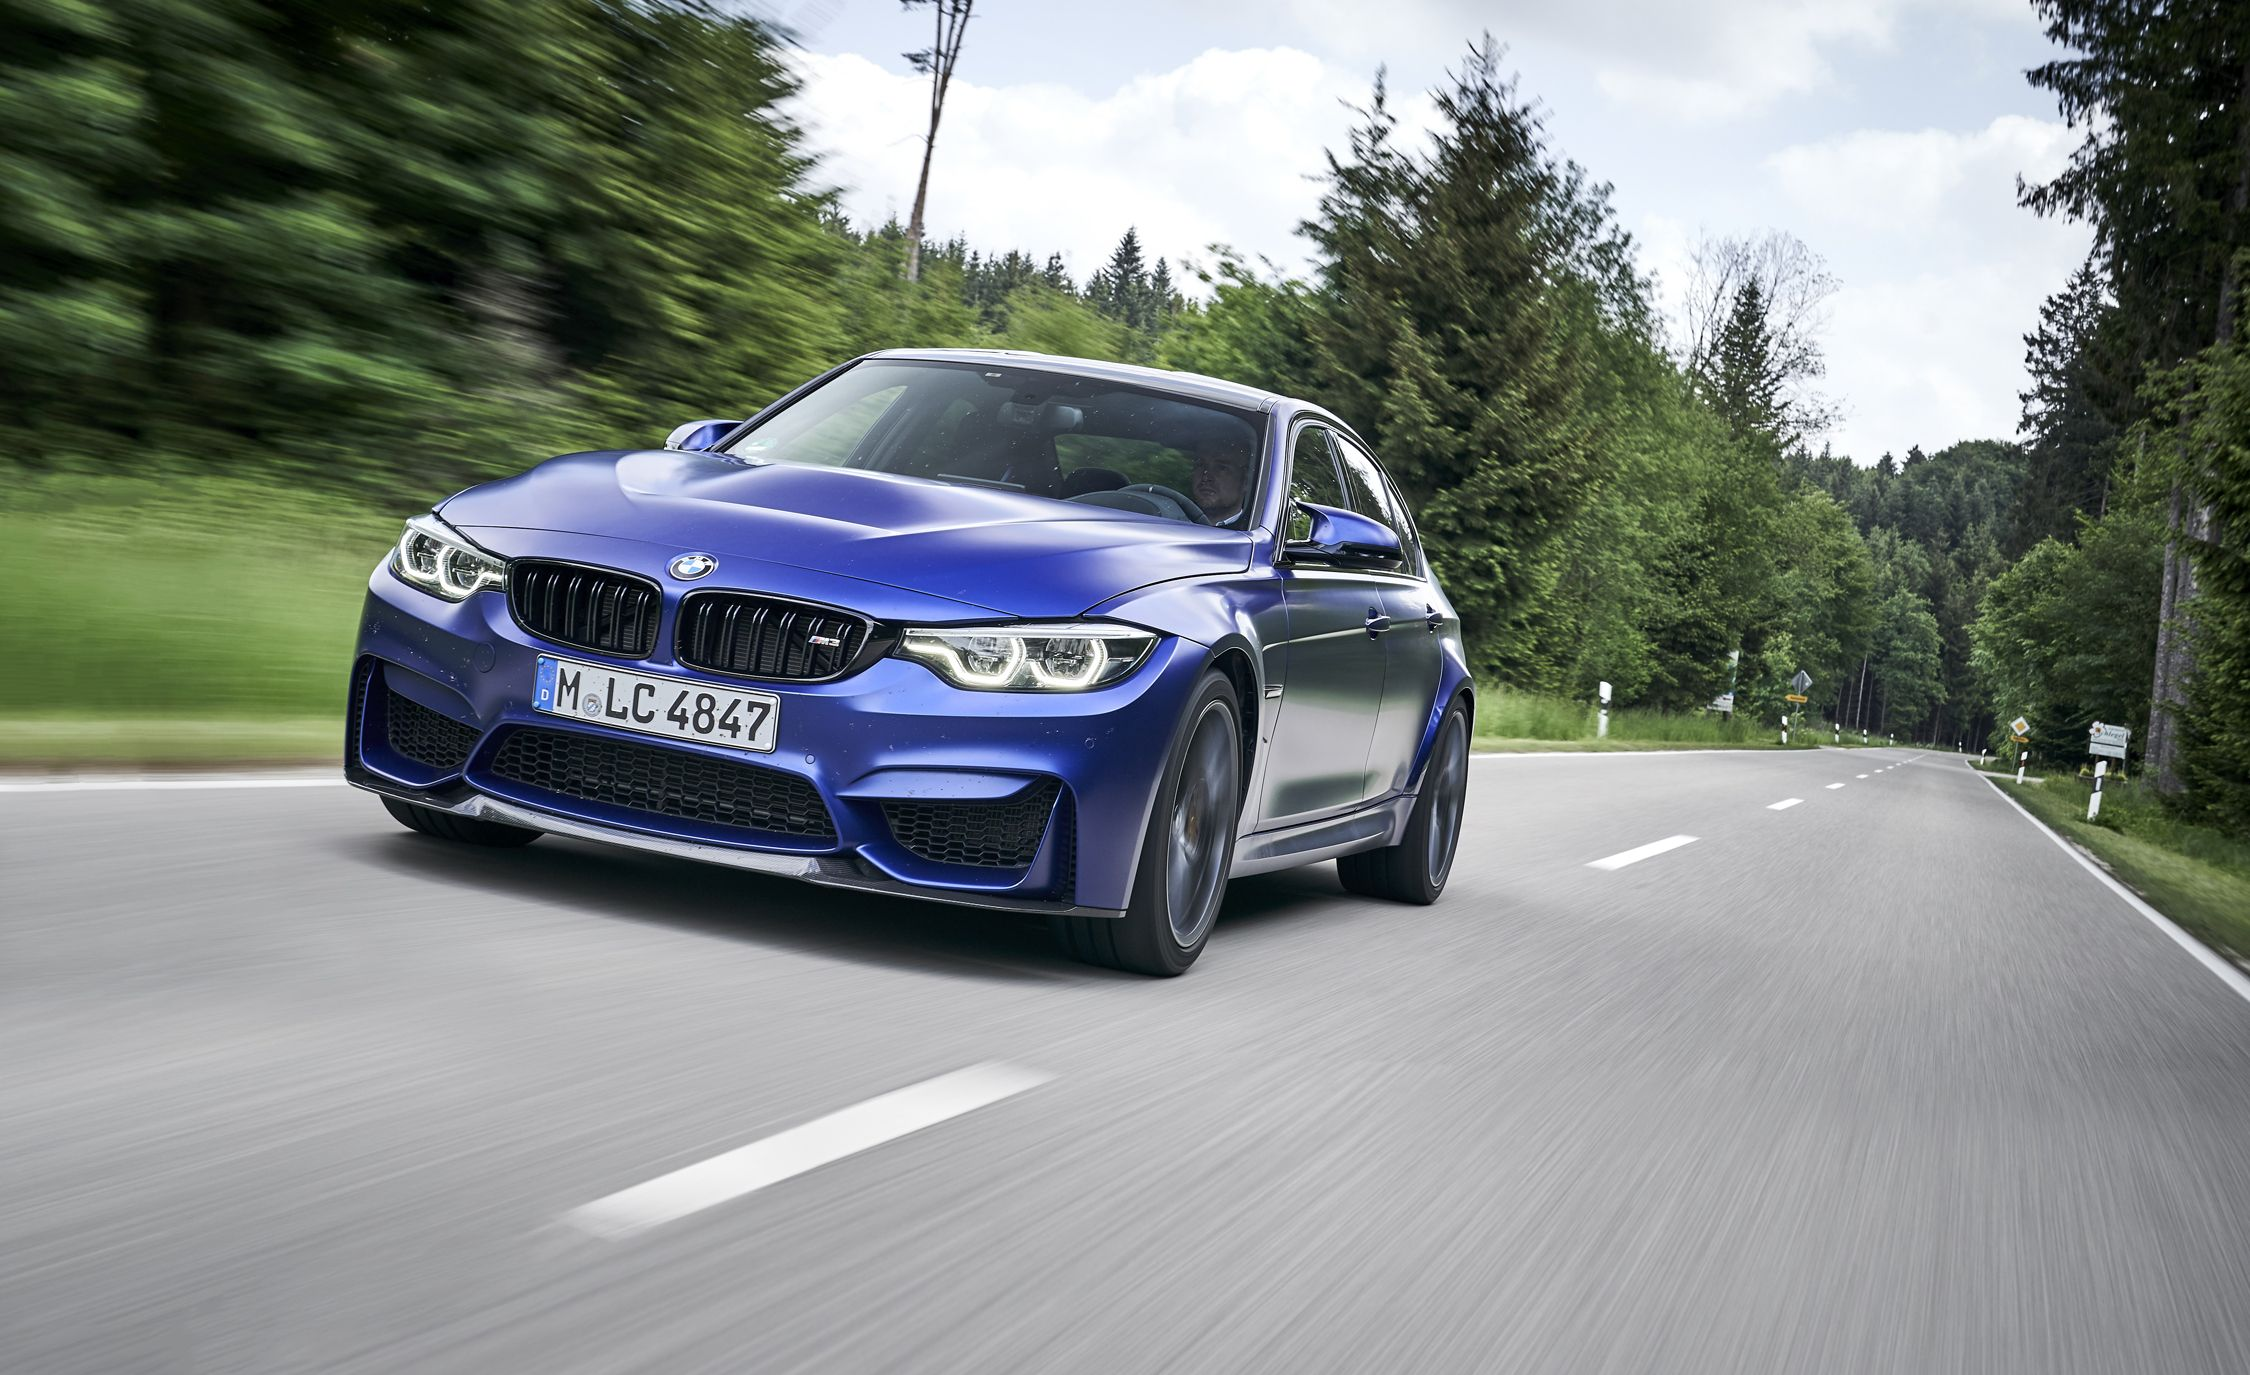 2019 Bmw M3 Reviews Bmw M3 Price Photos And Specs Car And Driver